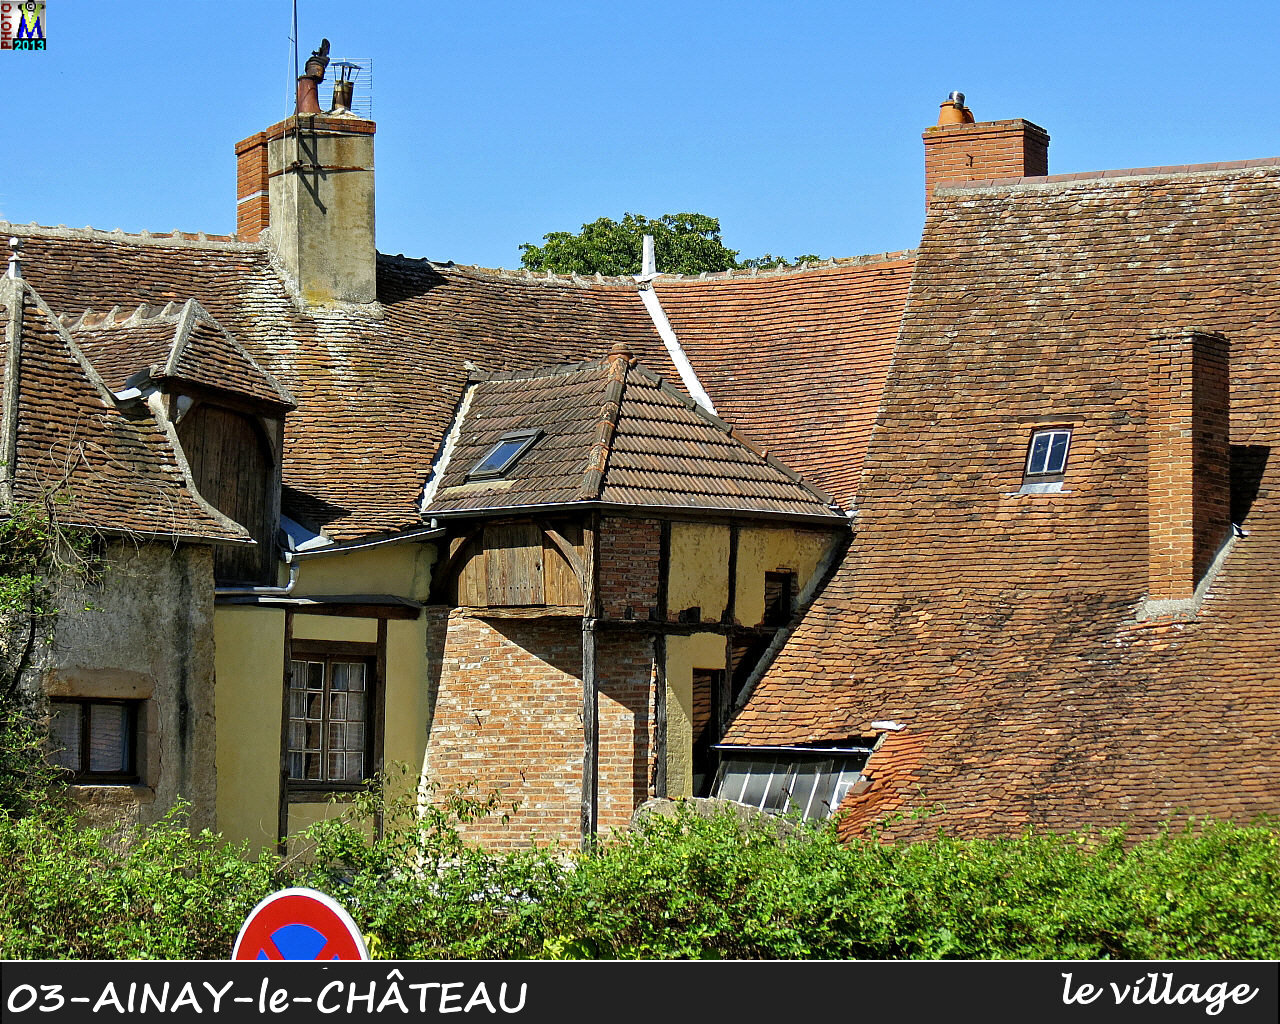 03AINAY-CHATEAU_village_110.jpg